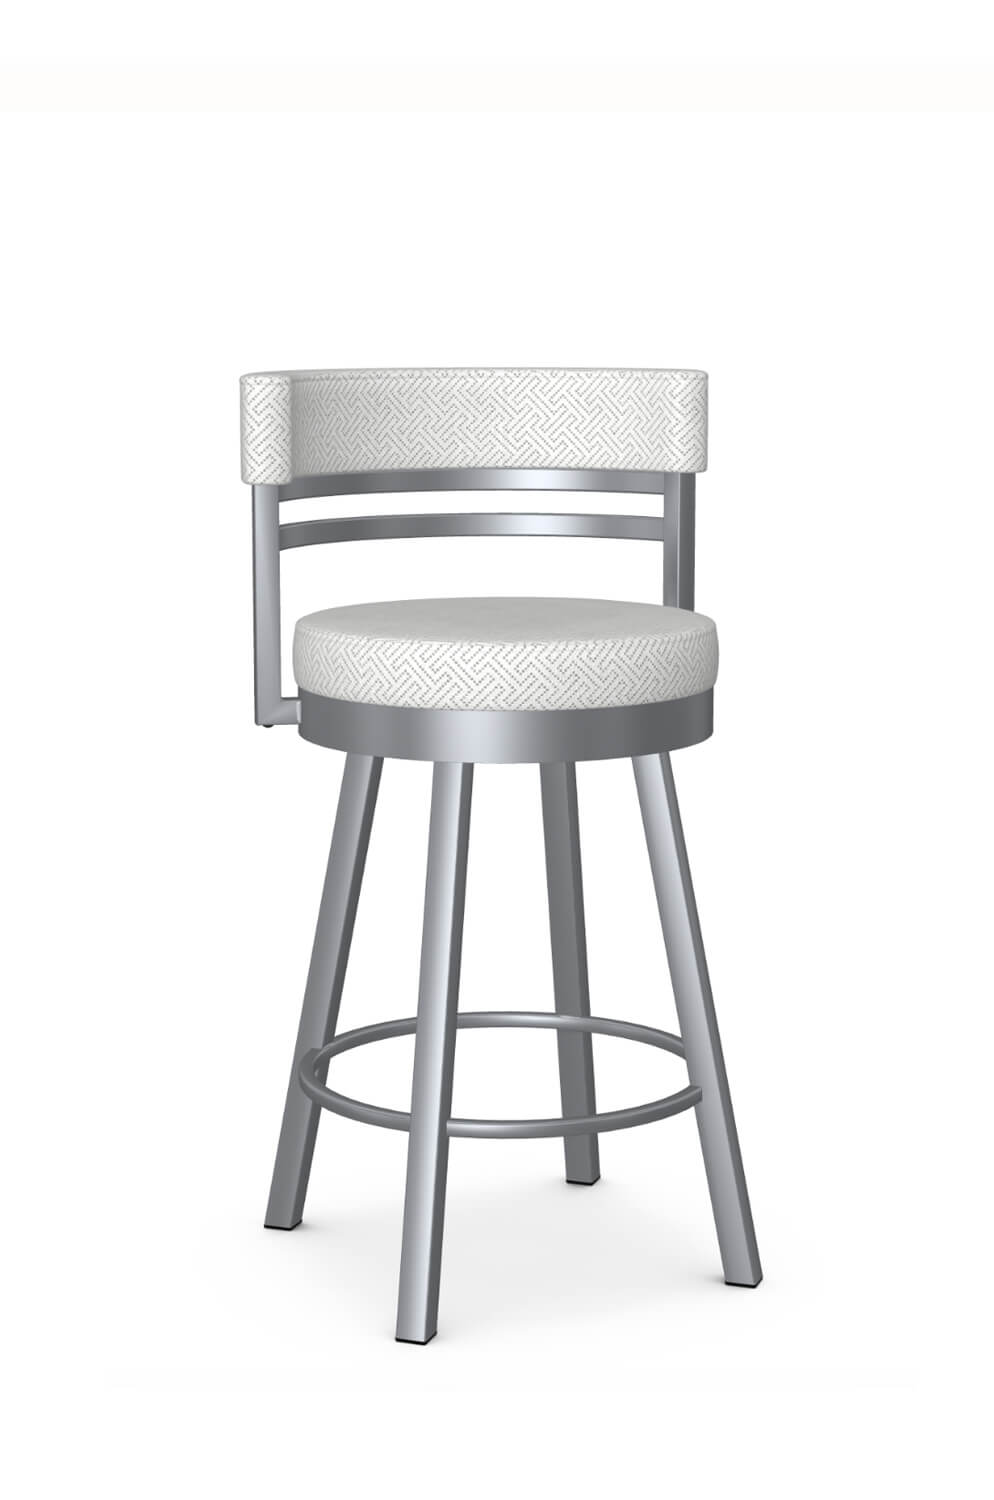 Picture of: Buy Amisco Ronny Swivel Stool Free Shipping Barstool Comforts